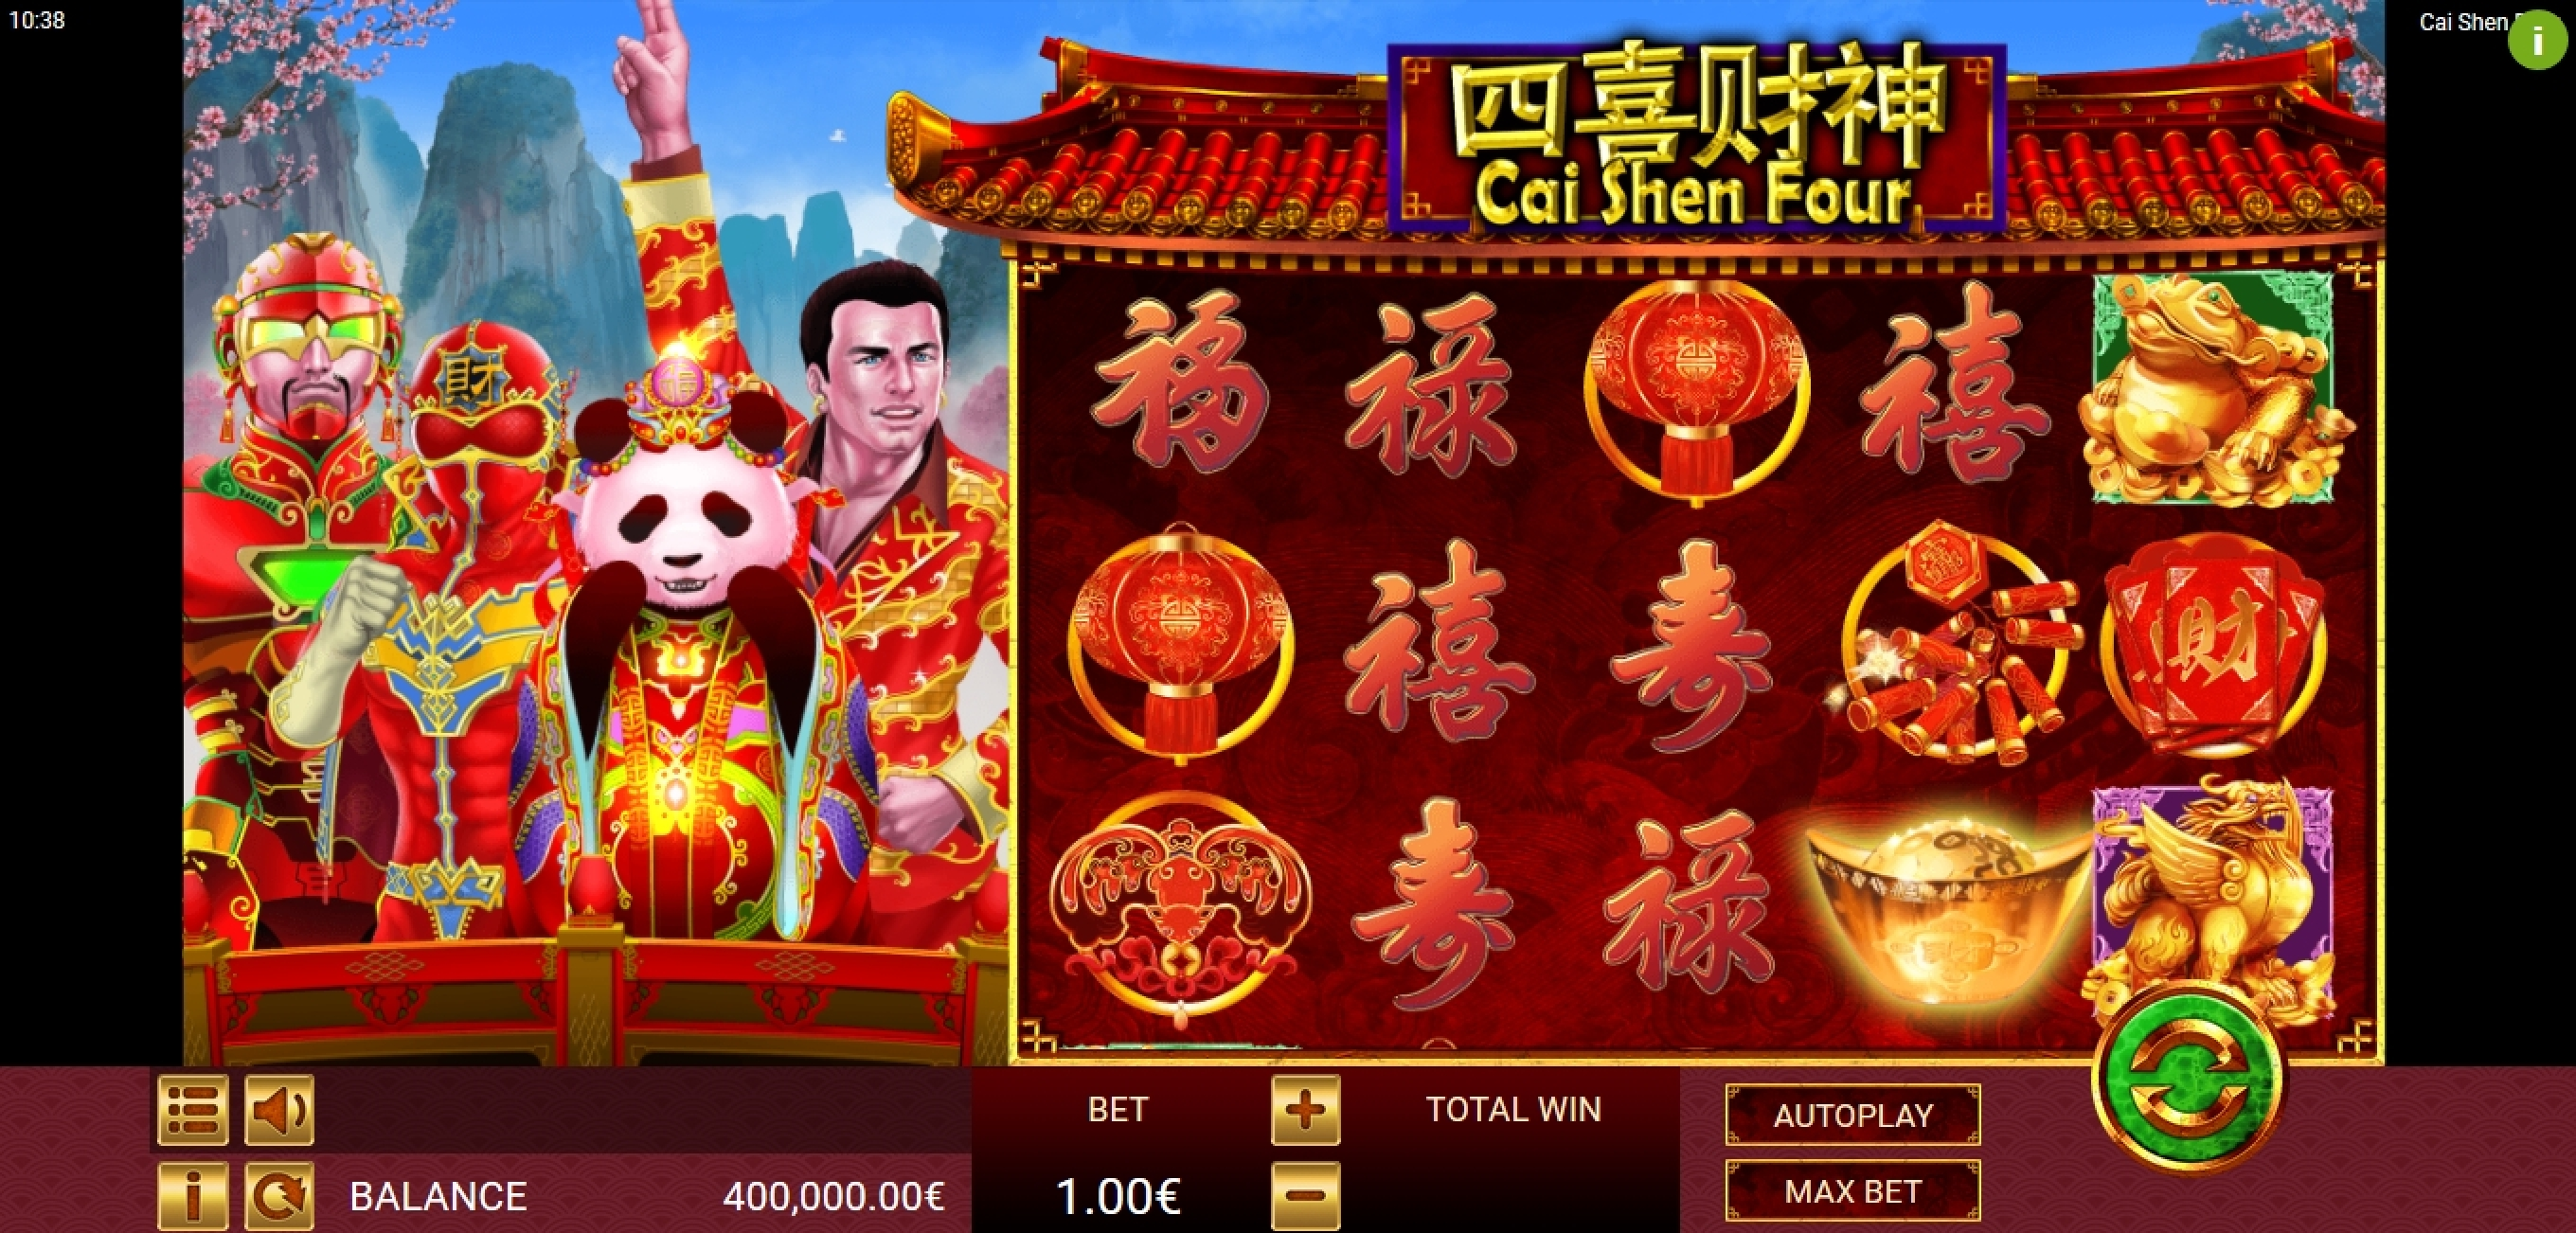 Reels in Cai Shen Four Slot Game by Gamatron